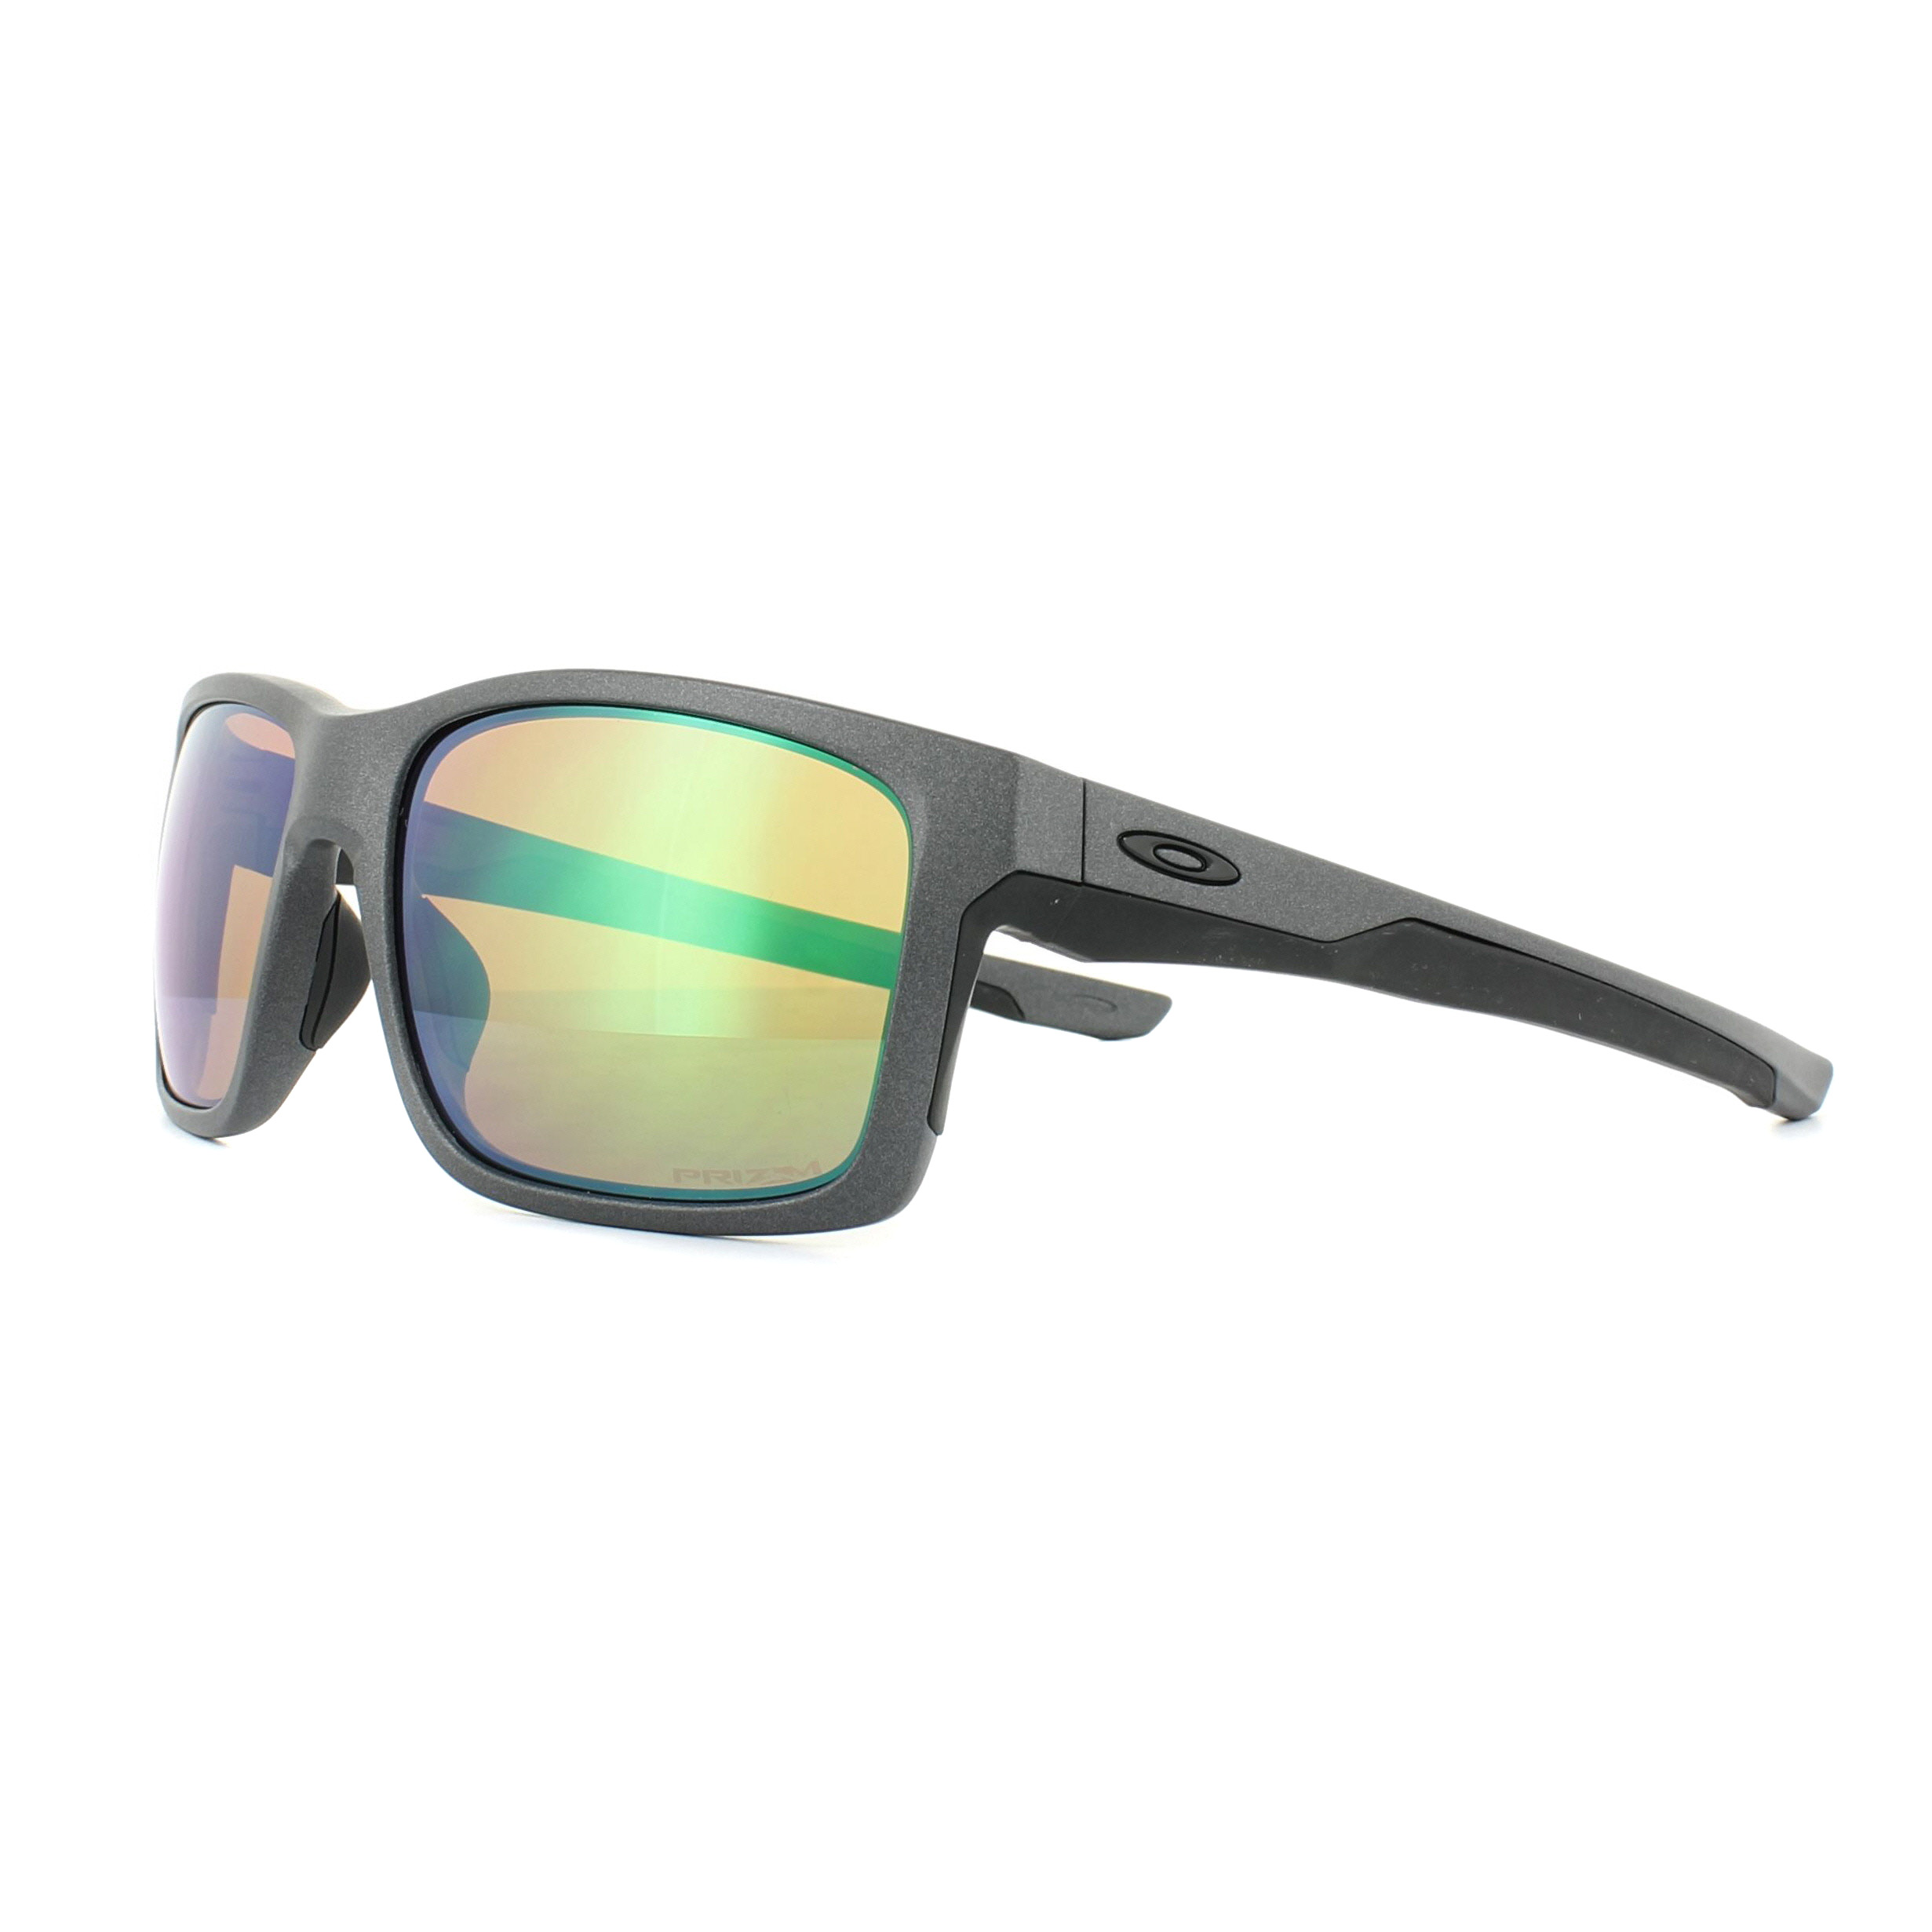 a429babaa9 ... discount code for sentinel oakley sunglasses mainlink oo9264 20 steel prizm  shallow water polarized d1506 4032d